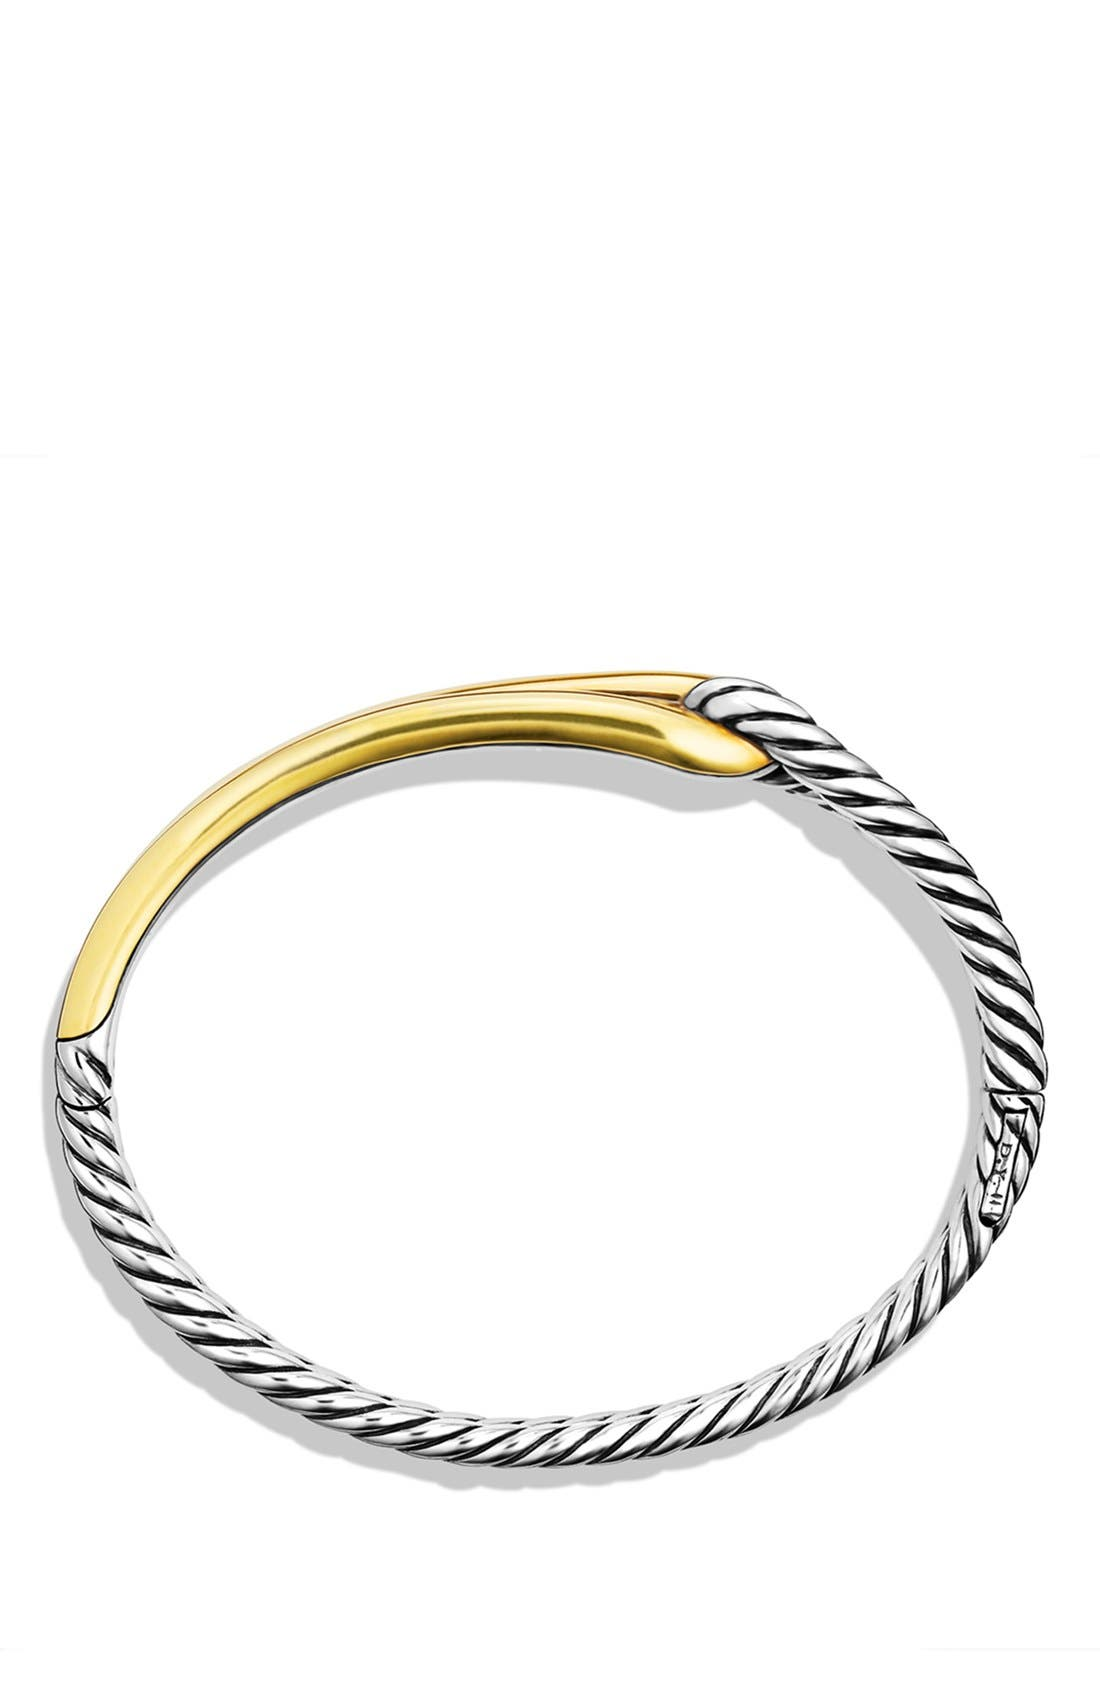 'Labyrinth' Single-Loop Bracelet with Gold,                             Alternate thumbnail 3, color,                             TWO TONE